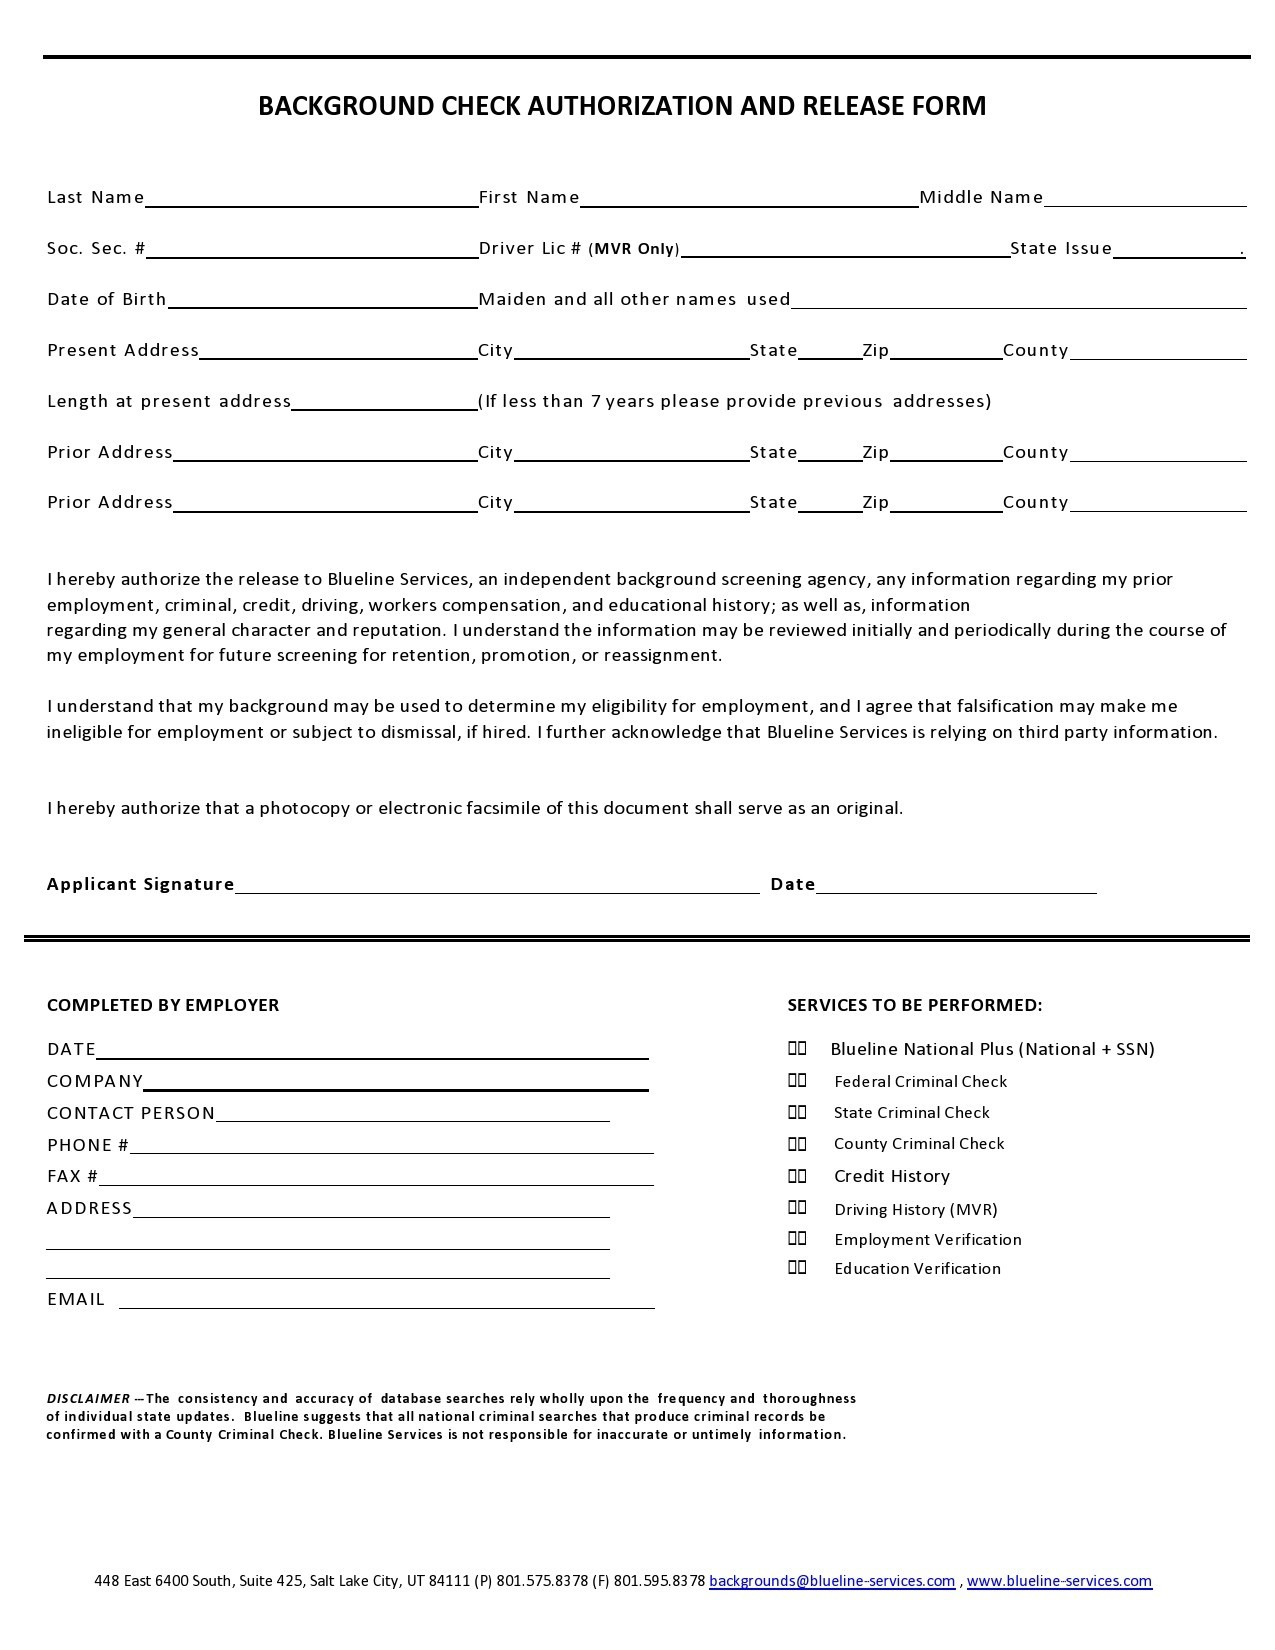 Free background check form 41